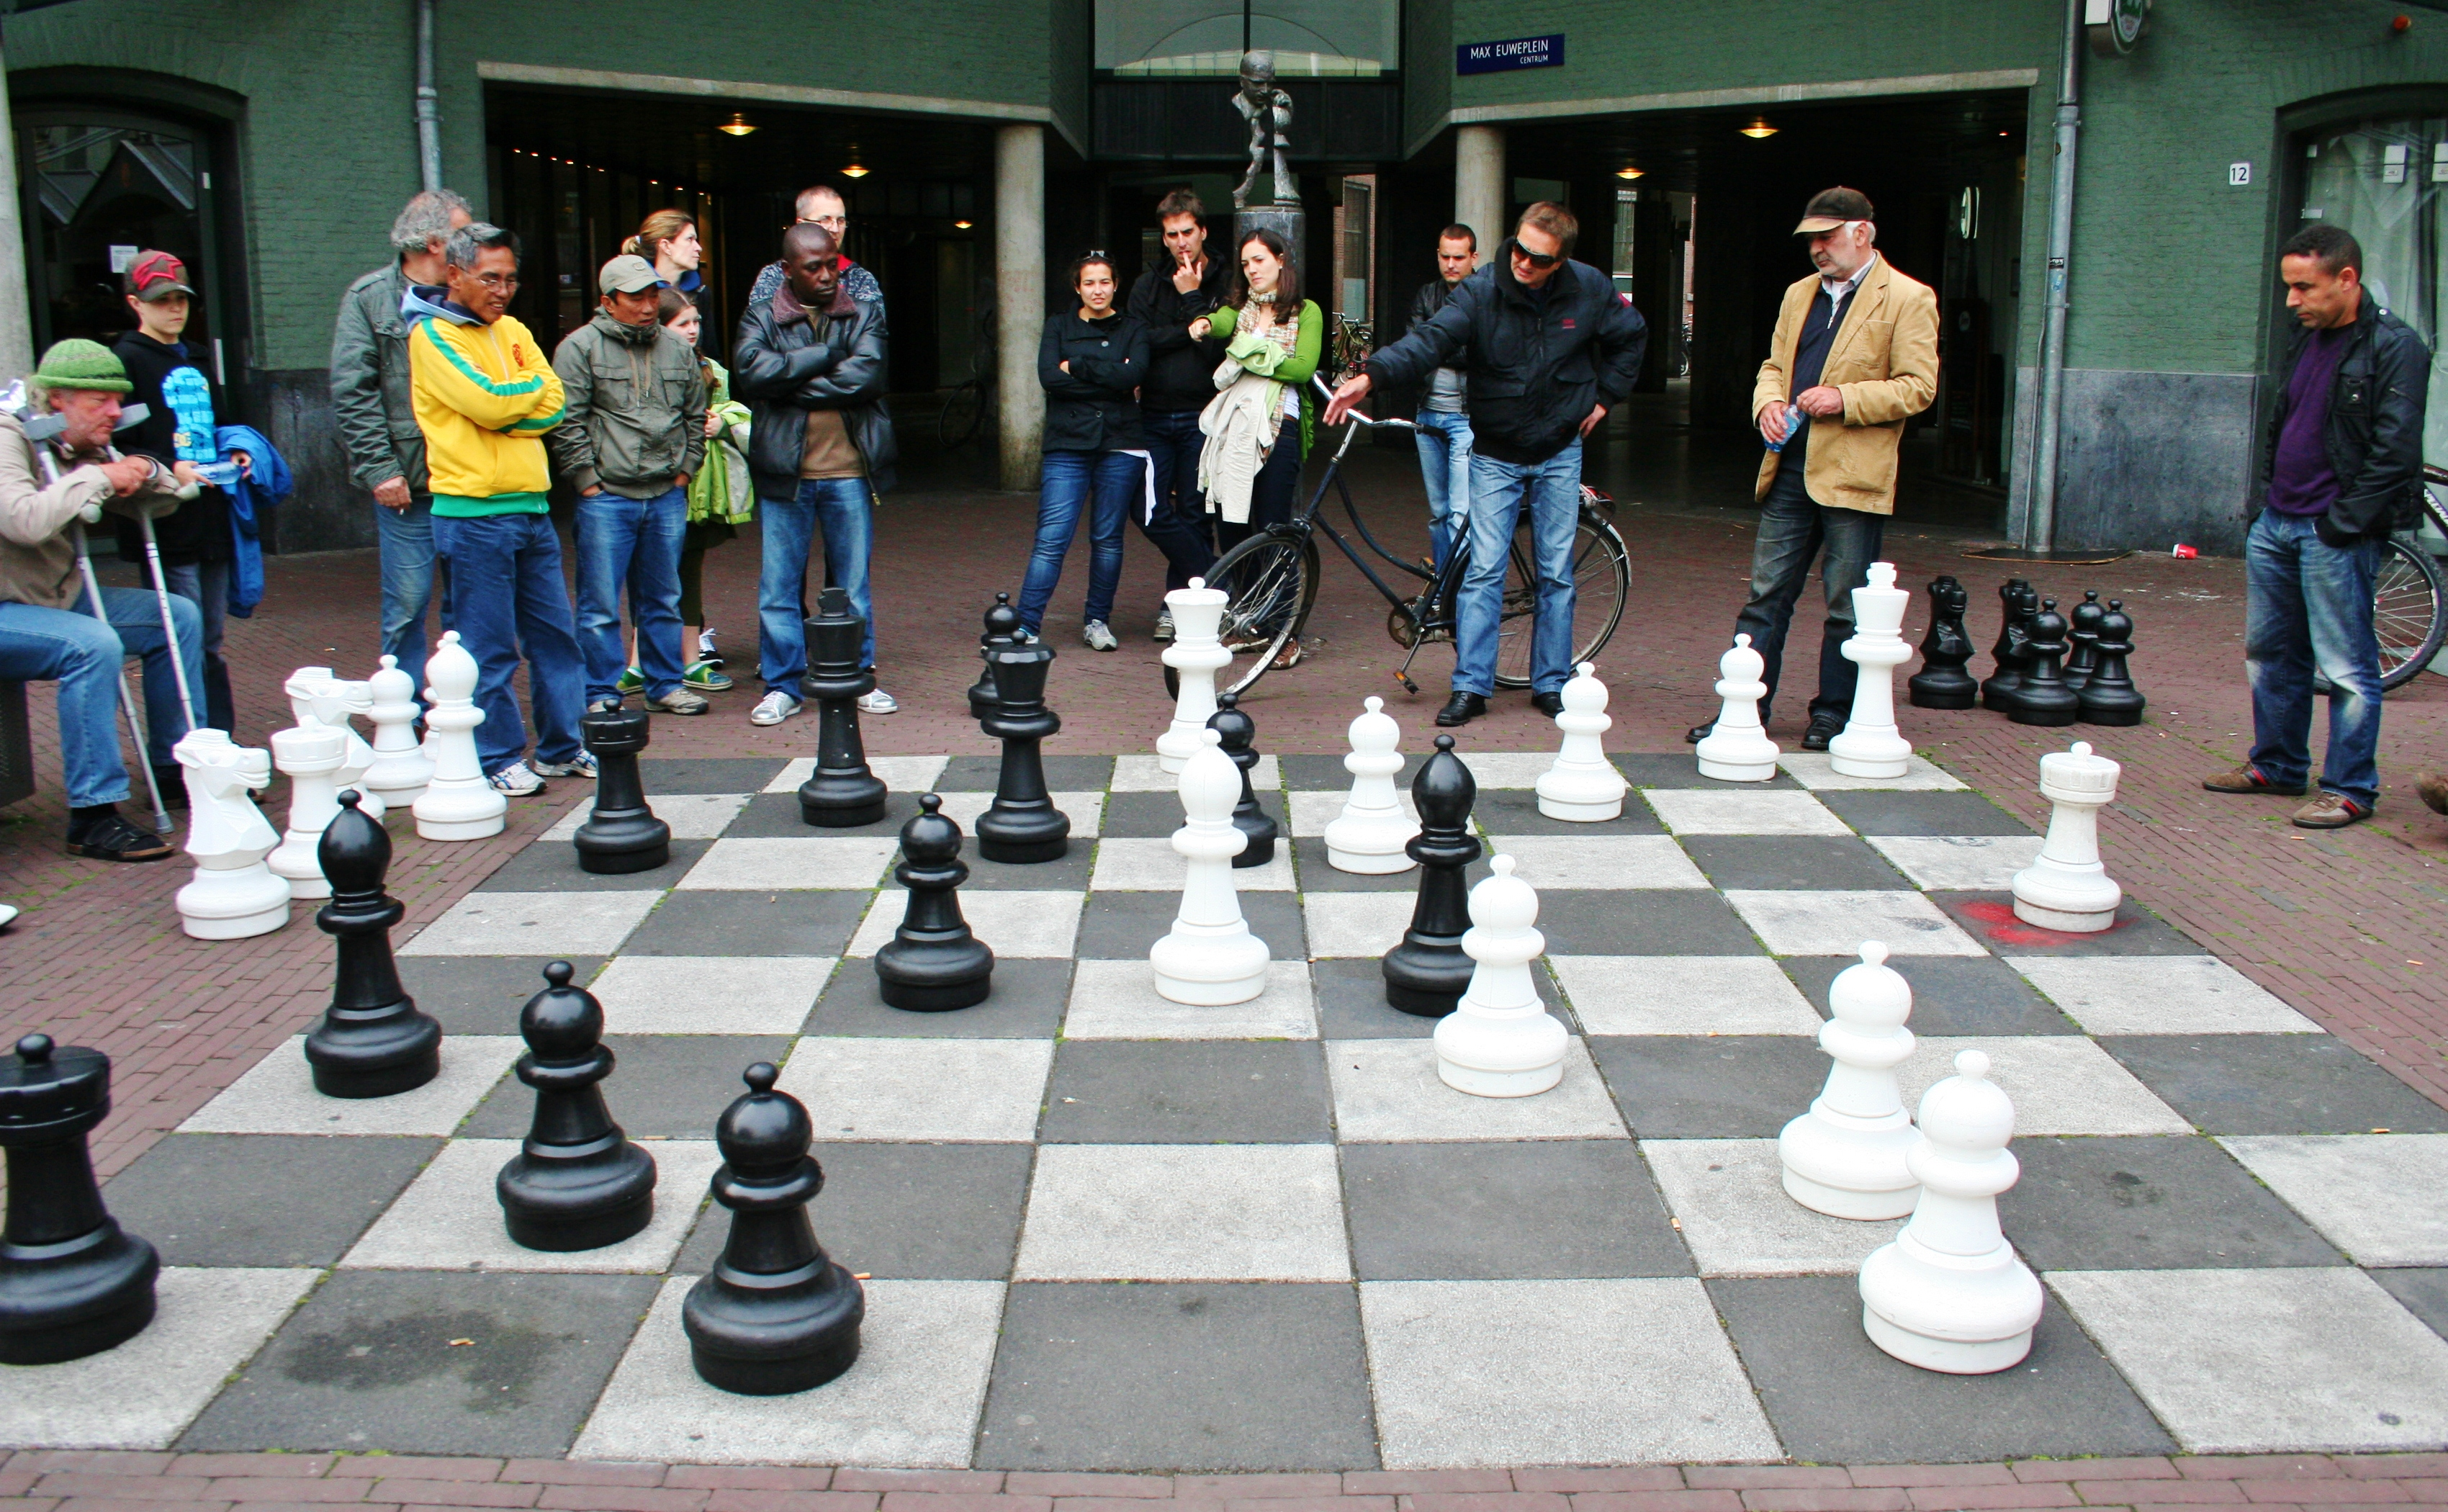 Chess square in Amsterdam